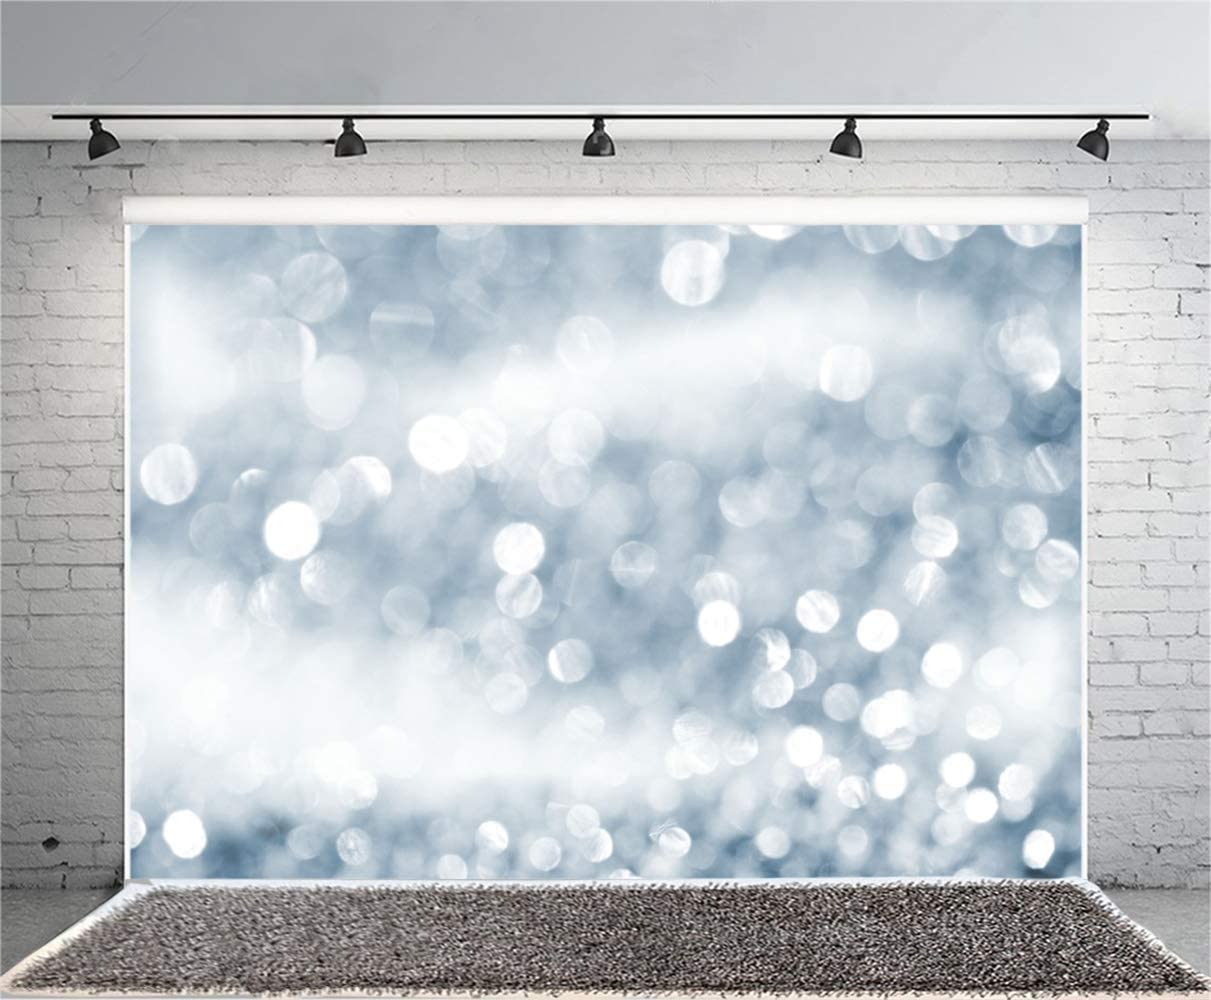 7x5ft Dreamlike Bokeh Sliver Light Spots Haloes Backdrop Polyester Abstract Artistic Photography Background Child Kids Newborn Girl Adult Portrait Shoot Studio Photo Props